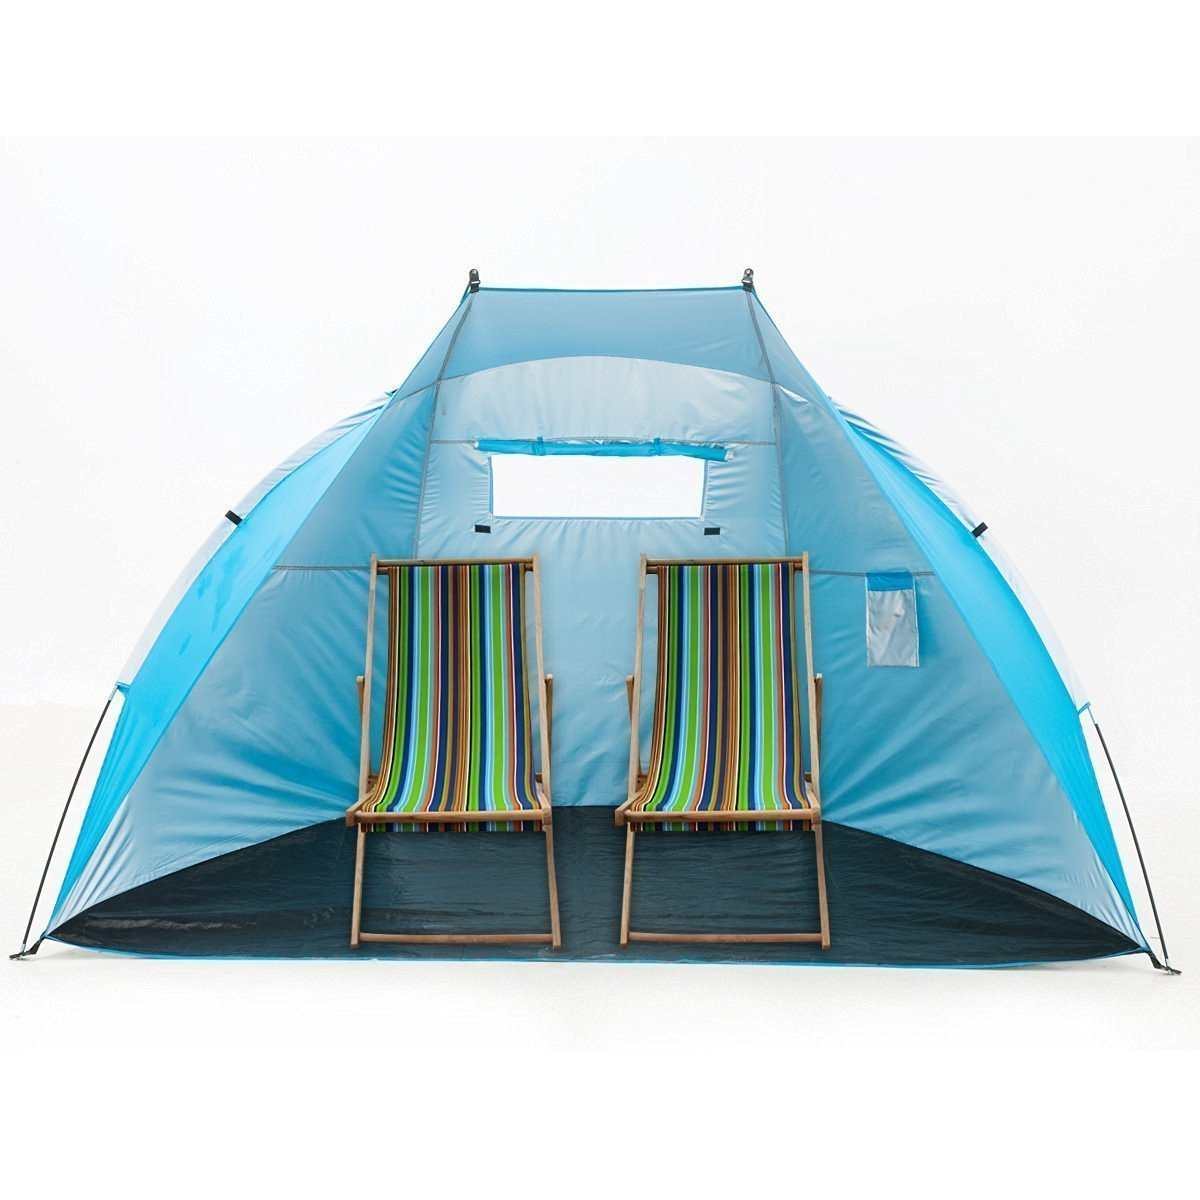 """iCorer Outdoor Portable EasyUp Beach Cabana Tent Sun Shelter Sunshade, Blue, 94.5""""L x 47.2""""W x 55""""H by iCorer"""